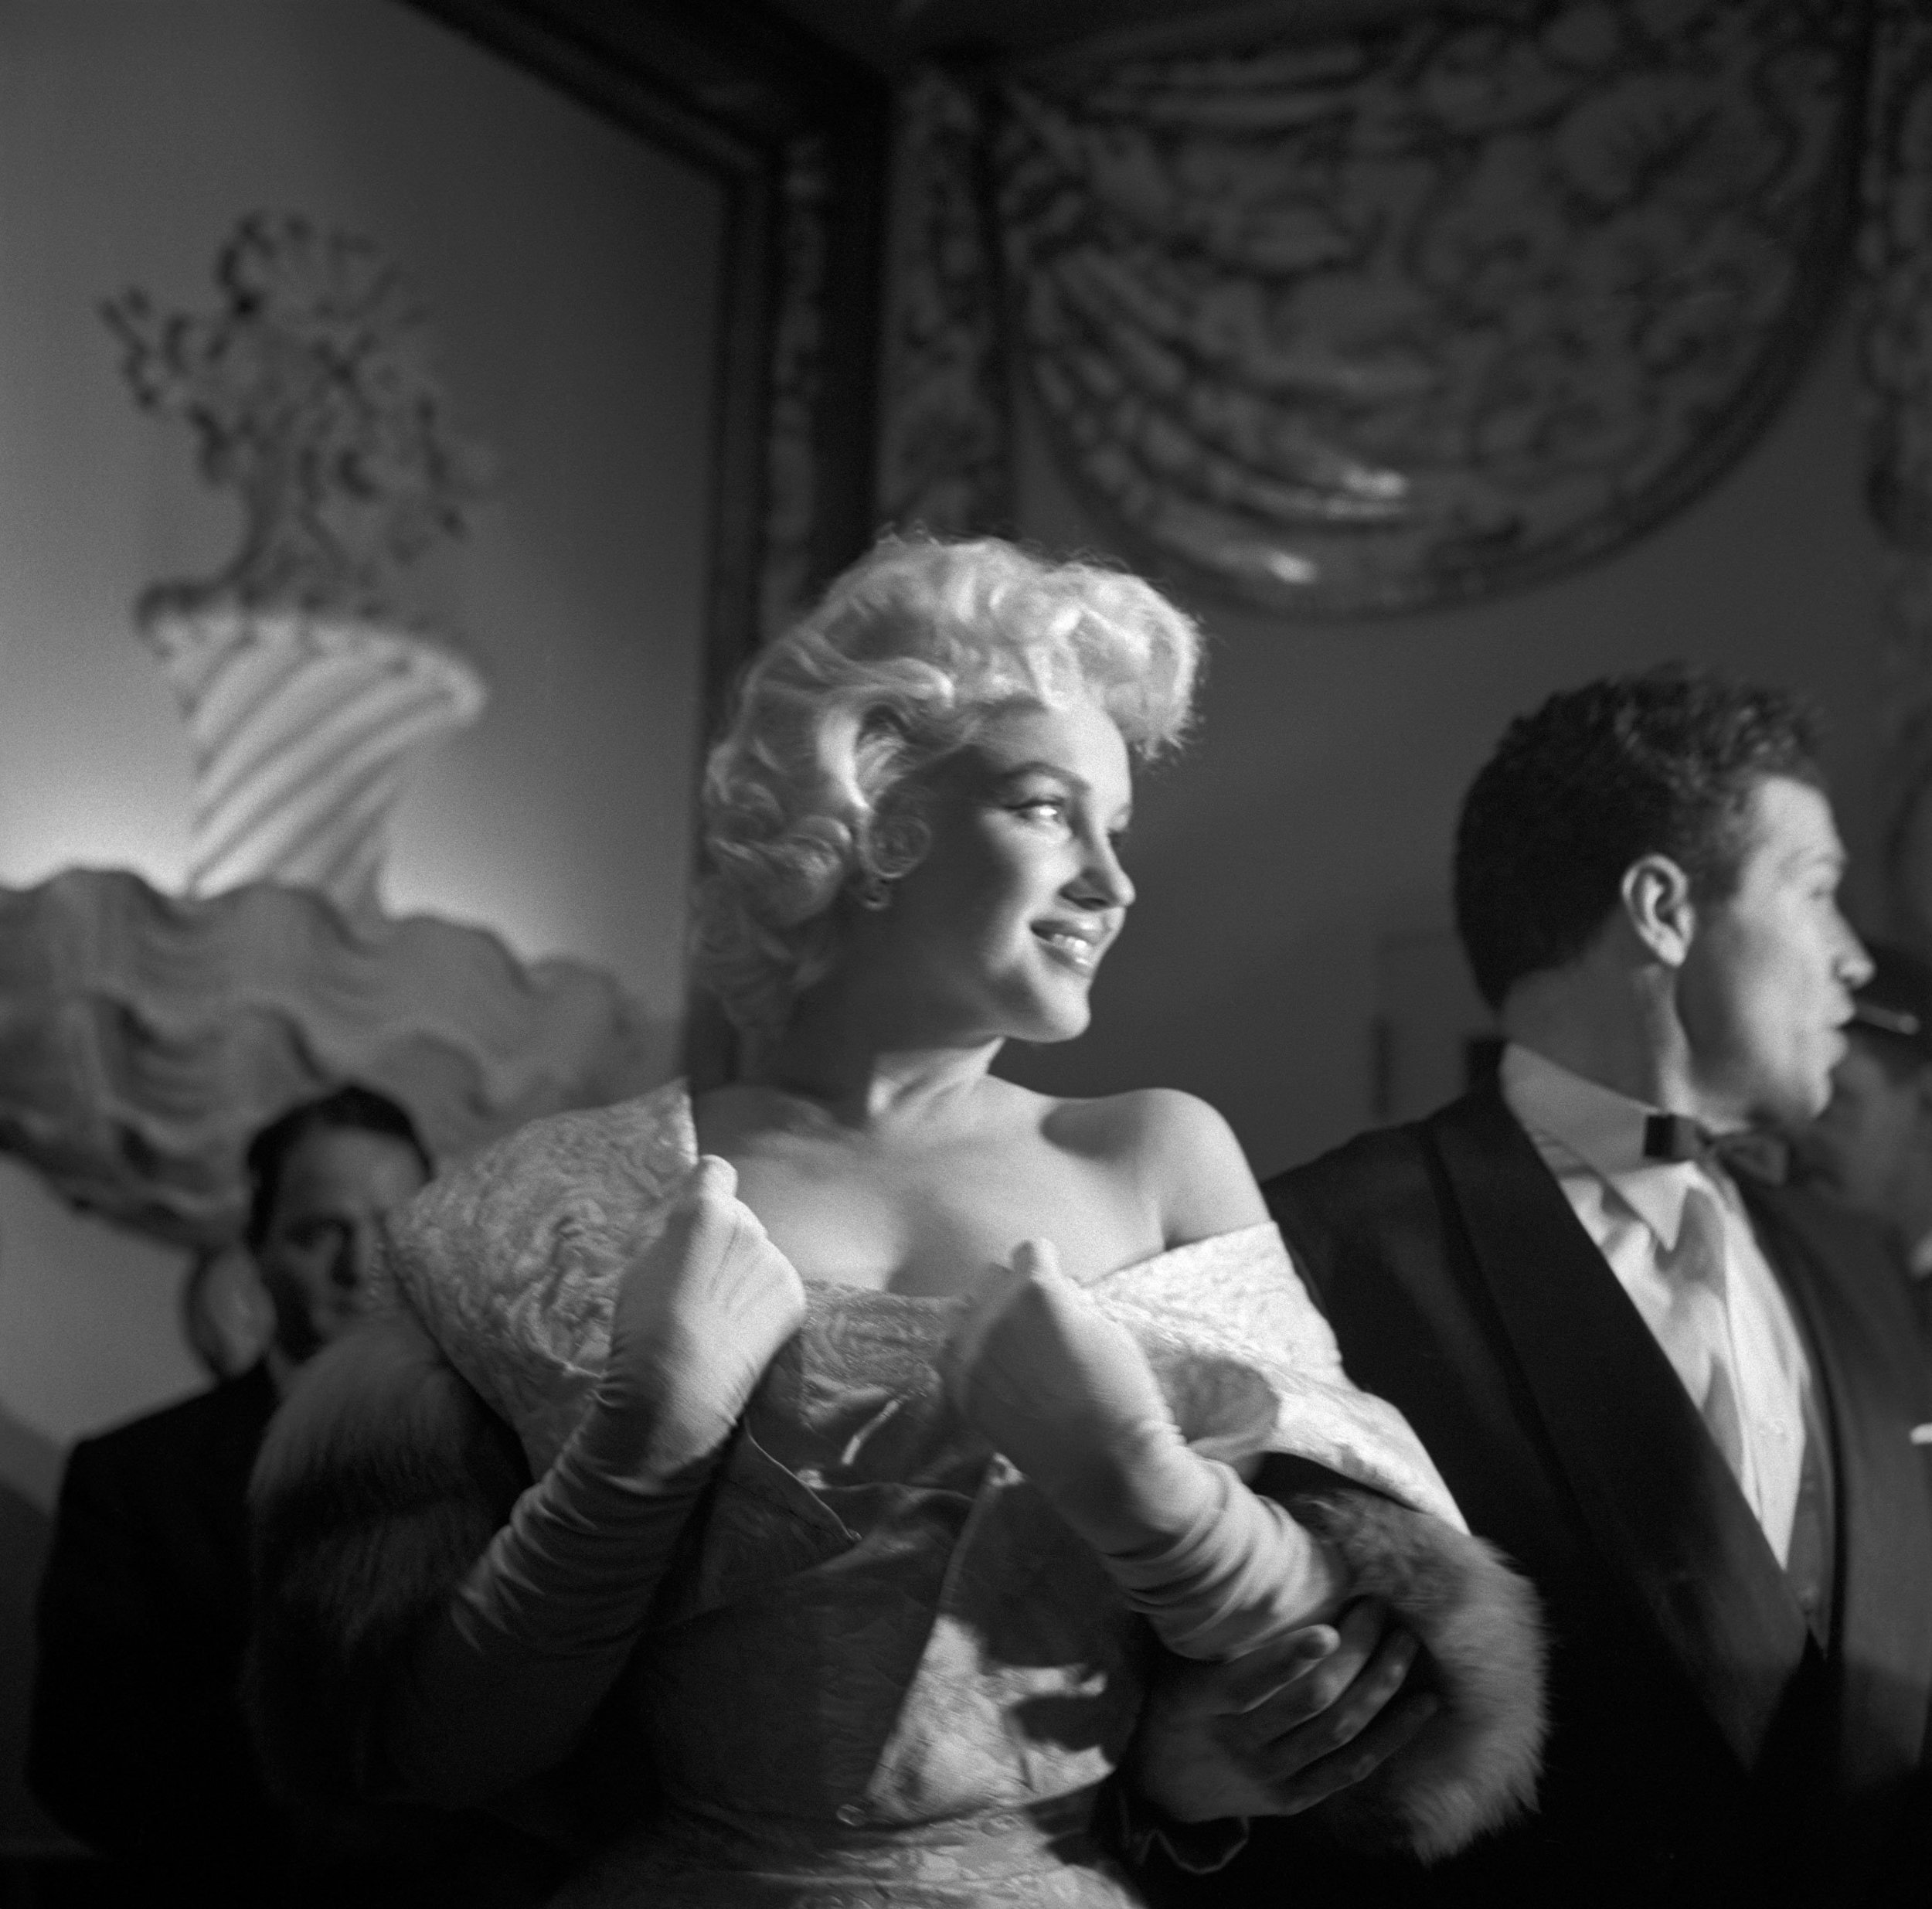 USA. New York. New York City. US Actress Marilyn MONROE at the premiere of 'East of Eden'. 1950.